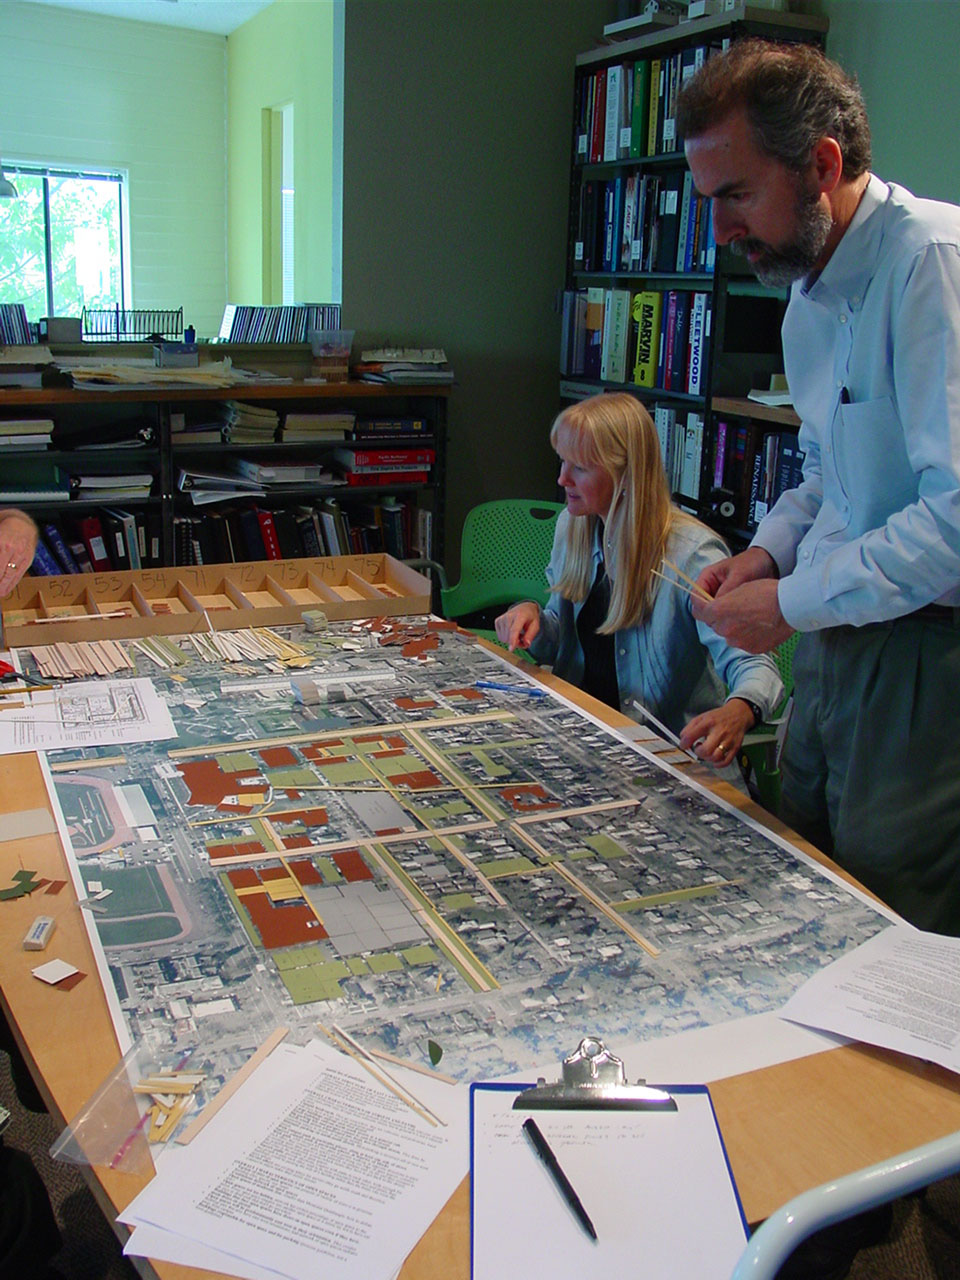 405_01_EastCampusPlan_workshop.jpg